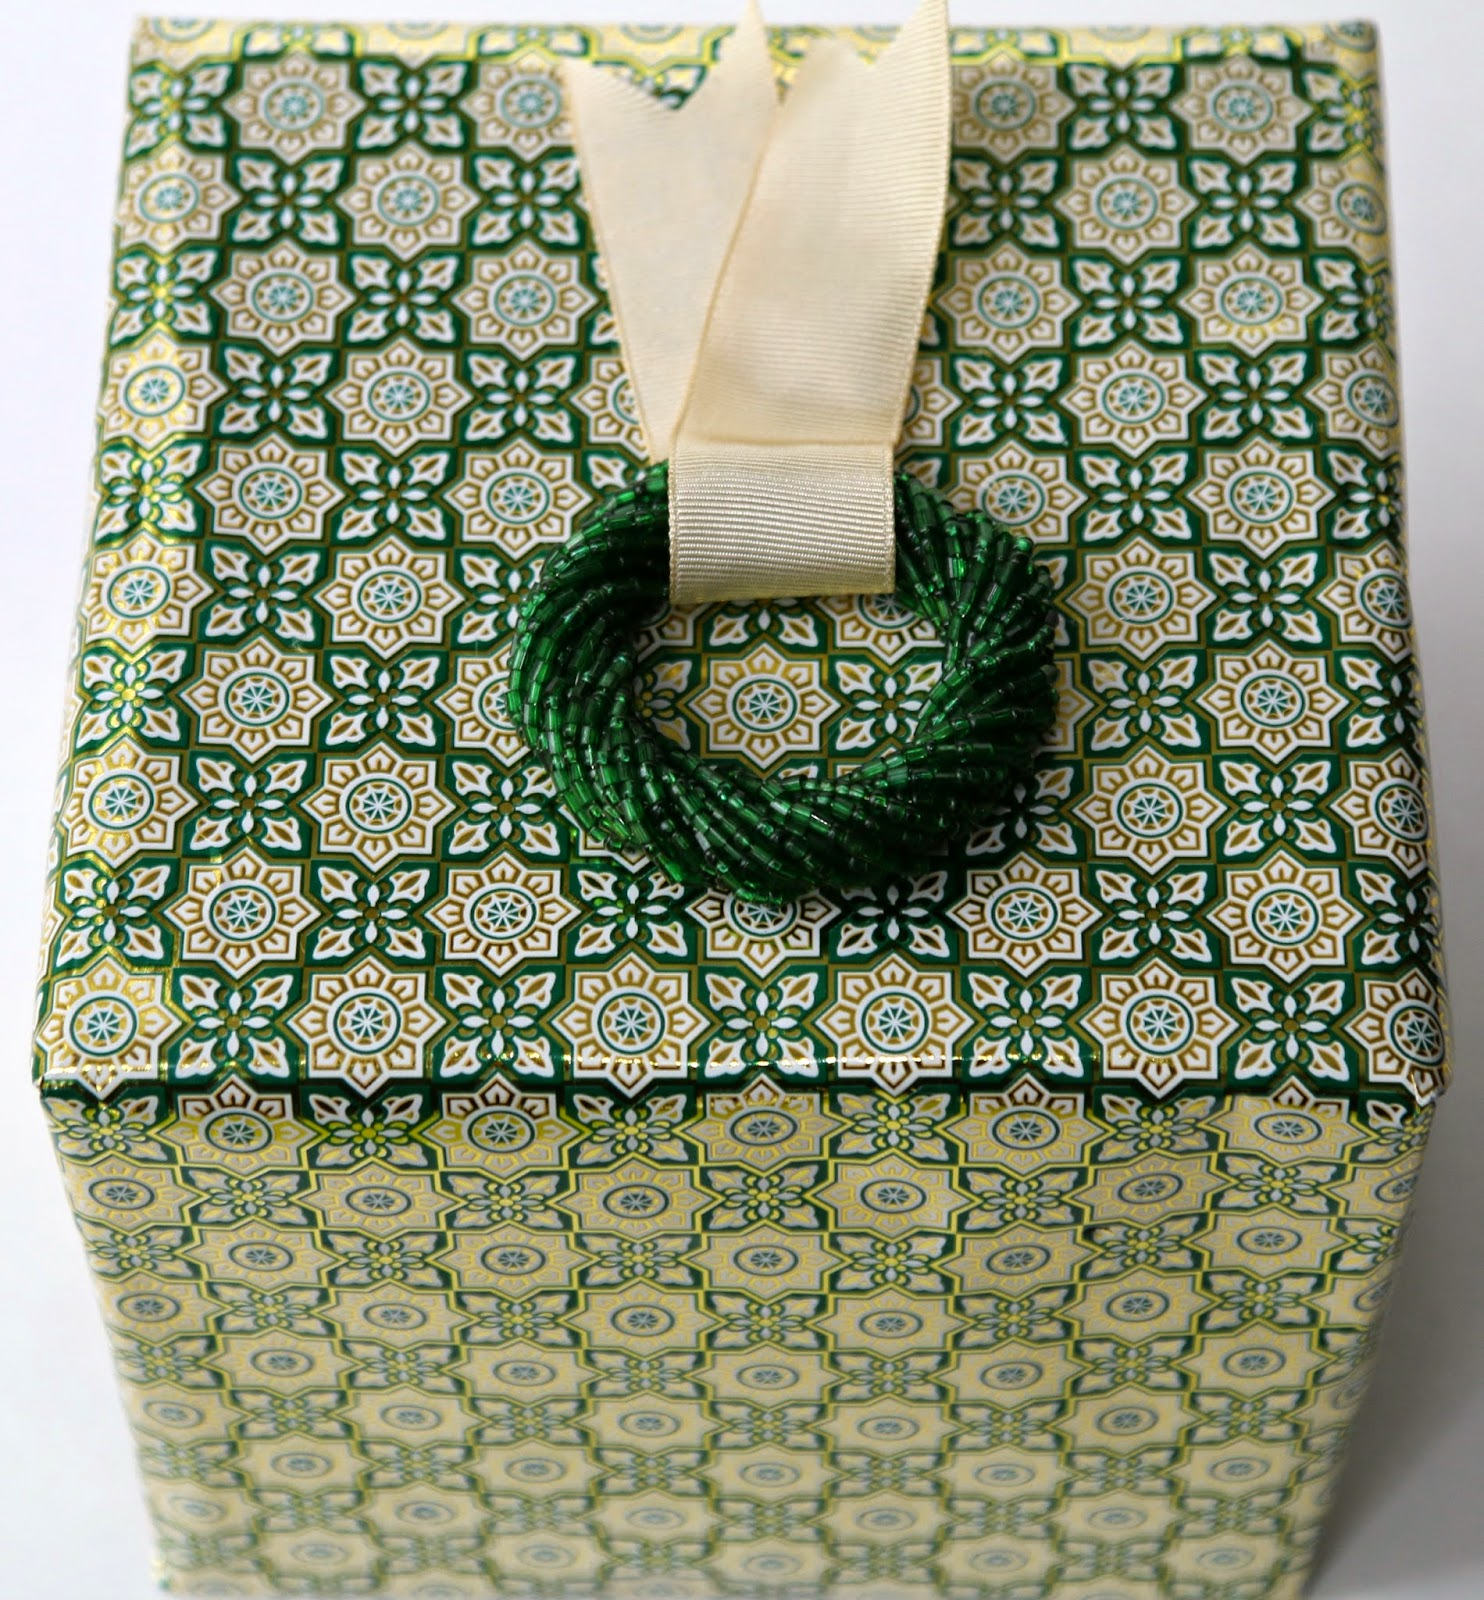 Wrapping with green, gold and holiday ornaments